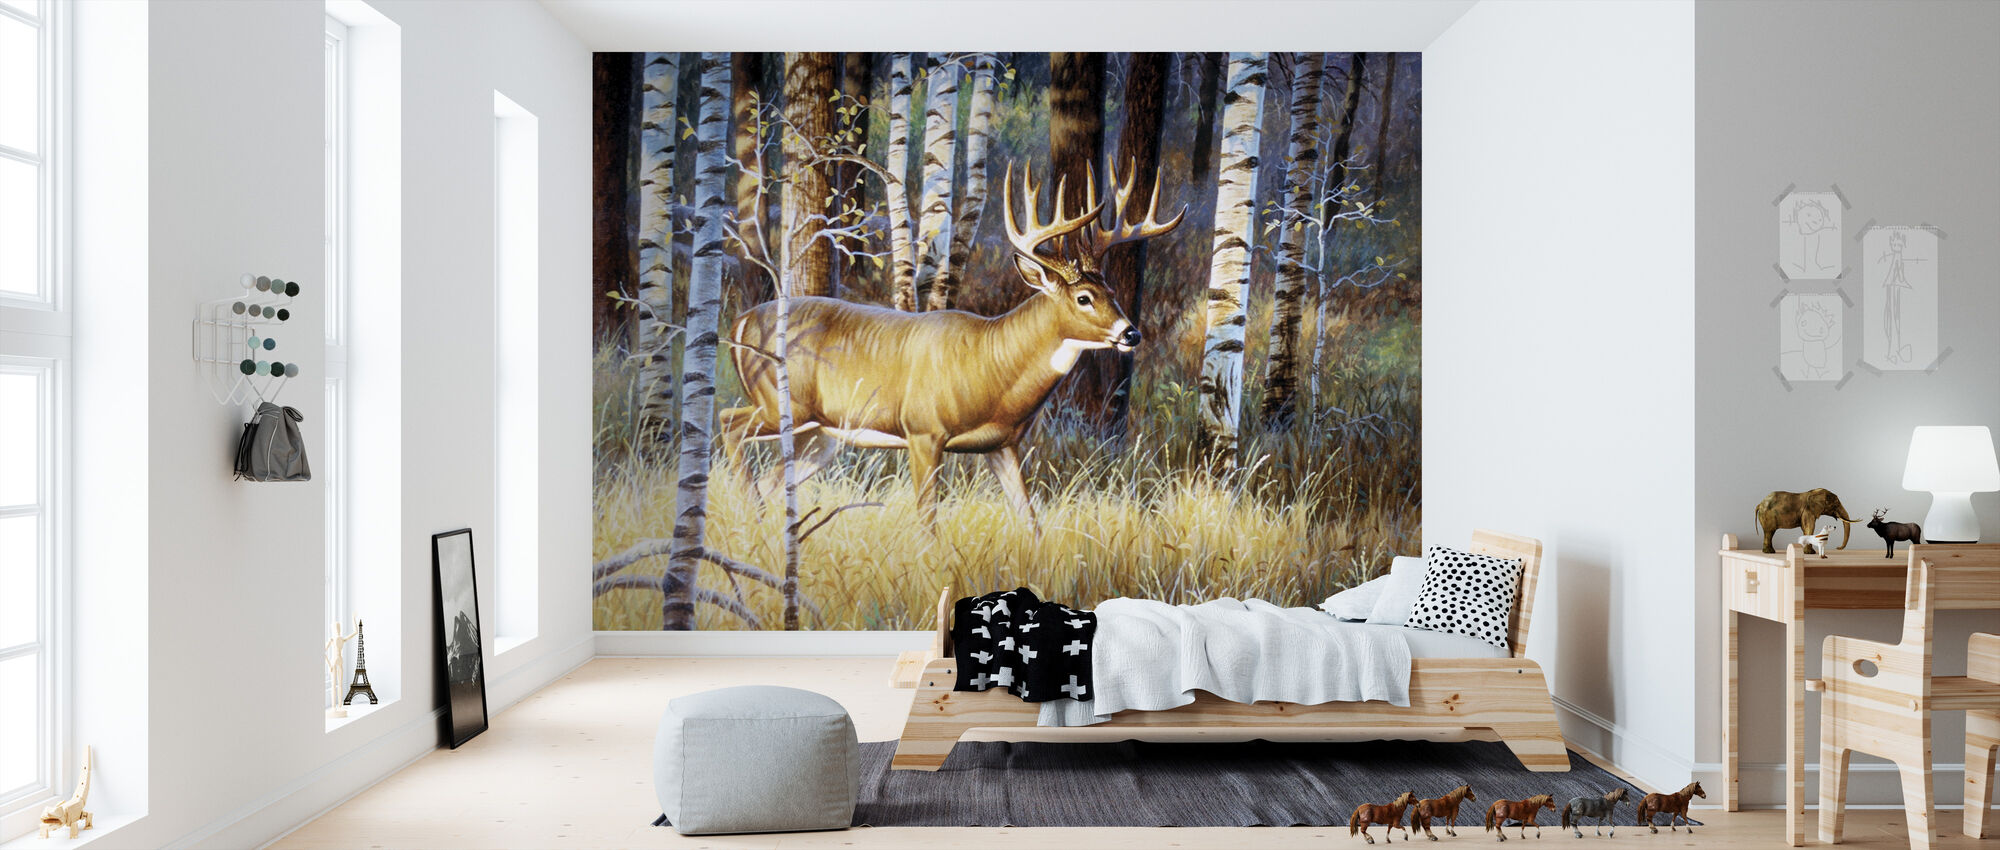 Single Whitetail - Tapet - Barnerom